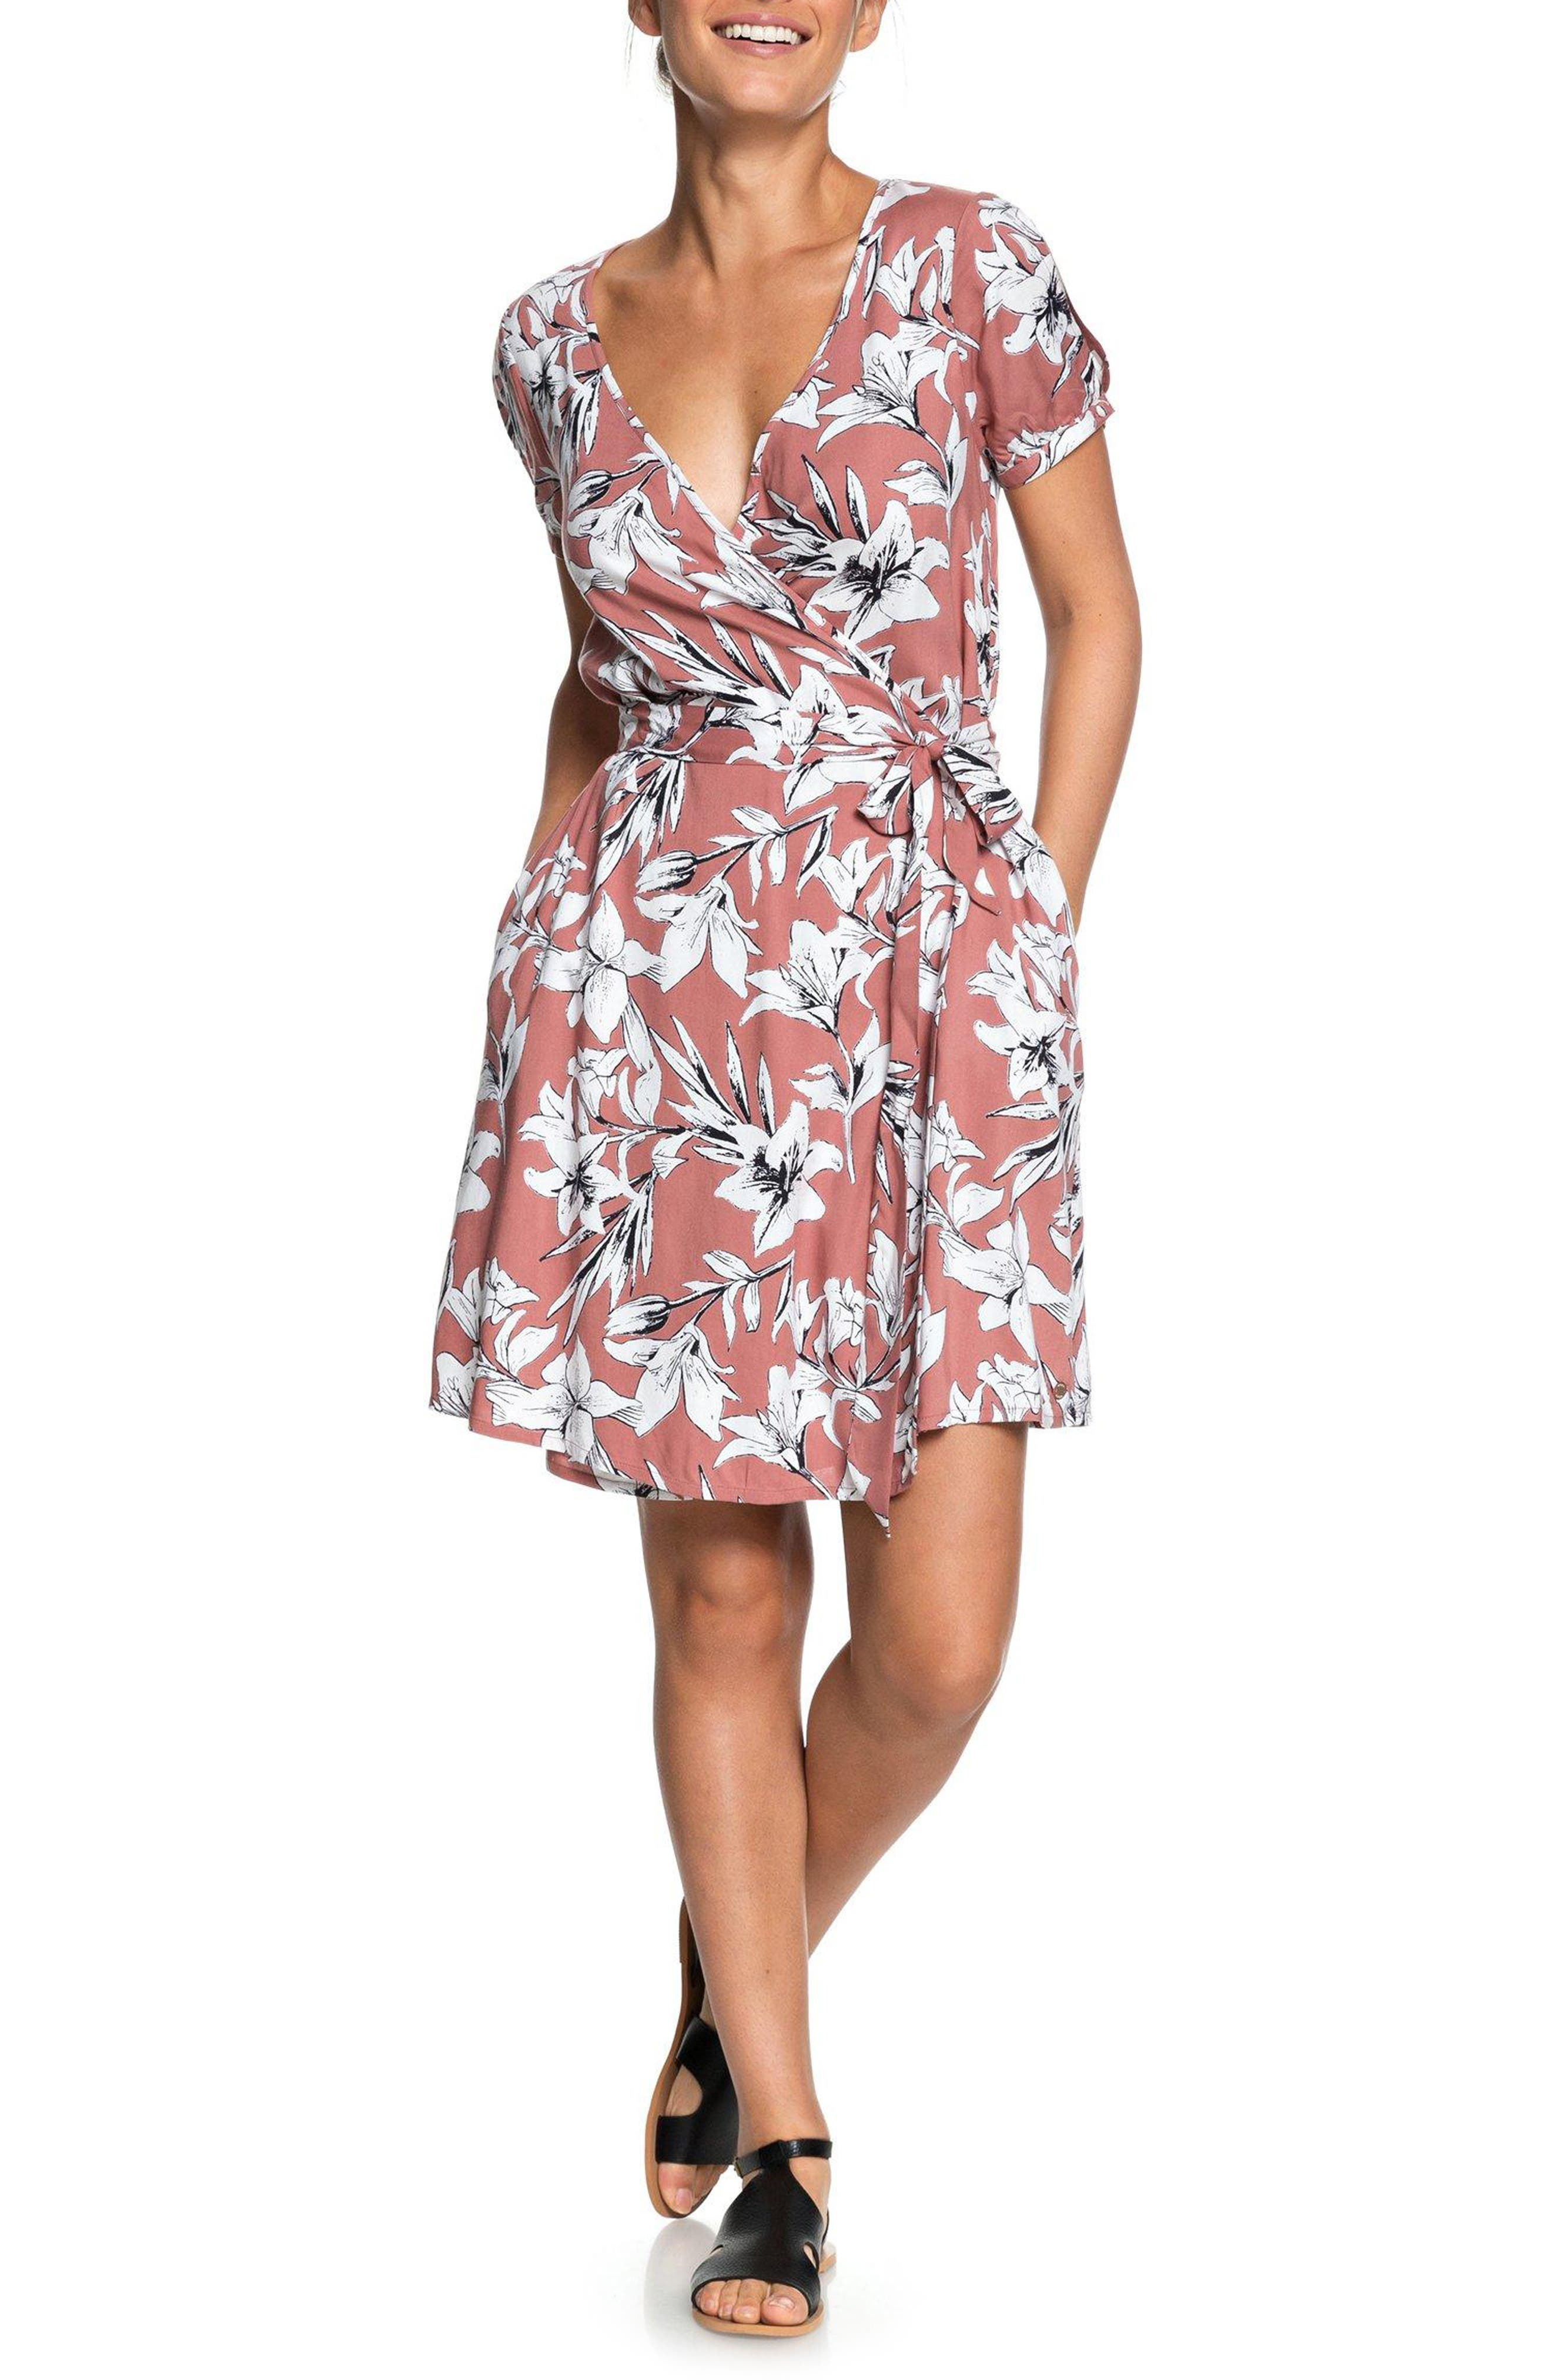 Monument View Floral Print Wrap Dress,                         Main,                         color, WITHERED ROSE LILY HOUSE